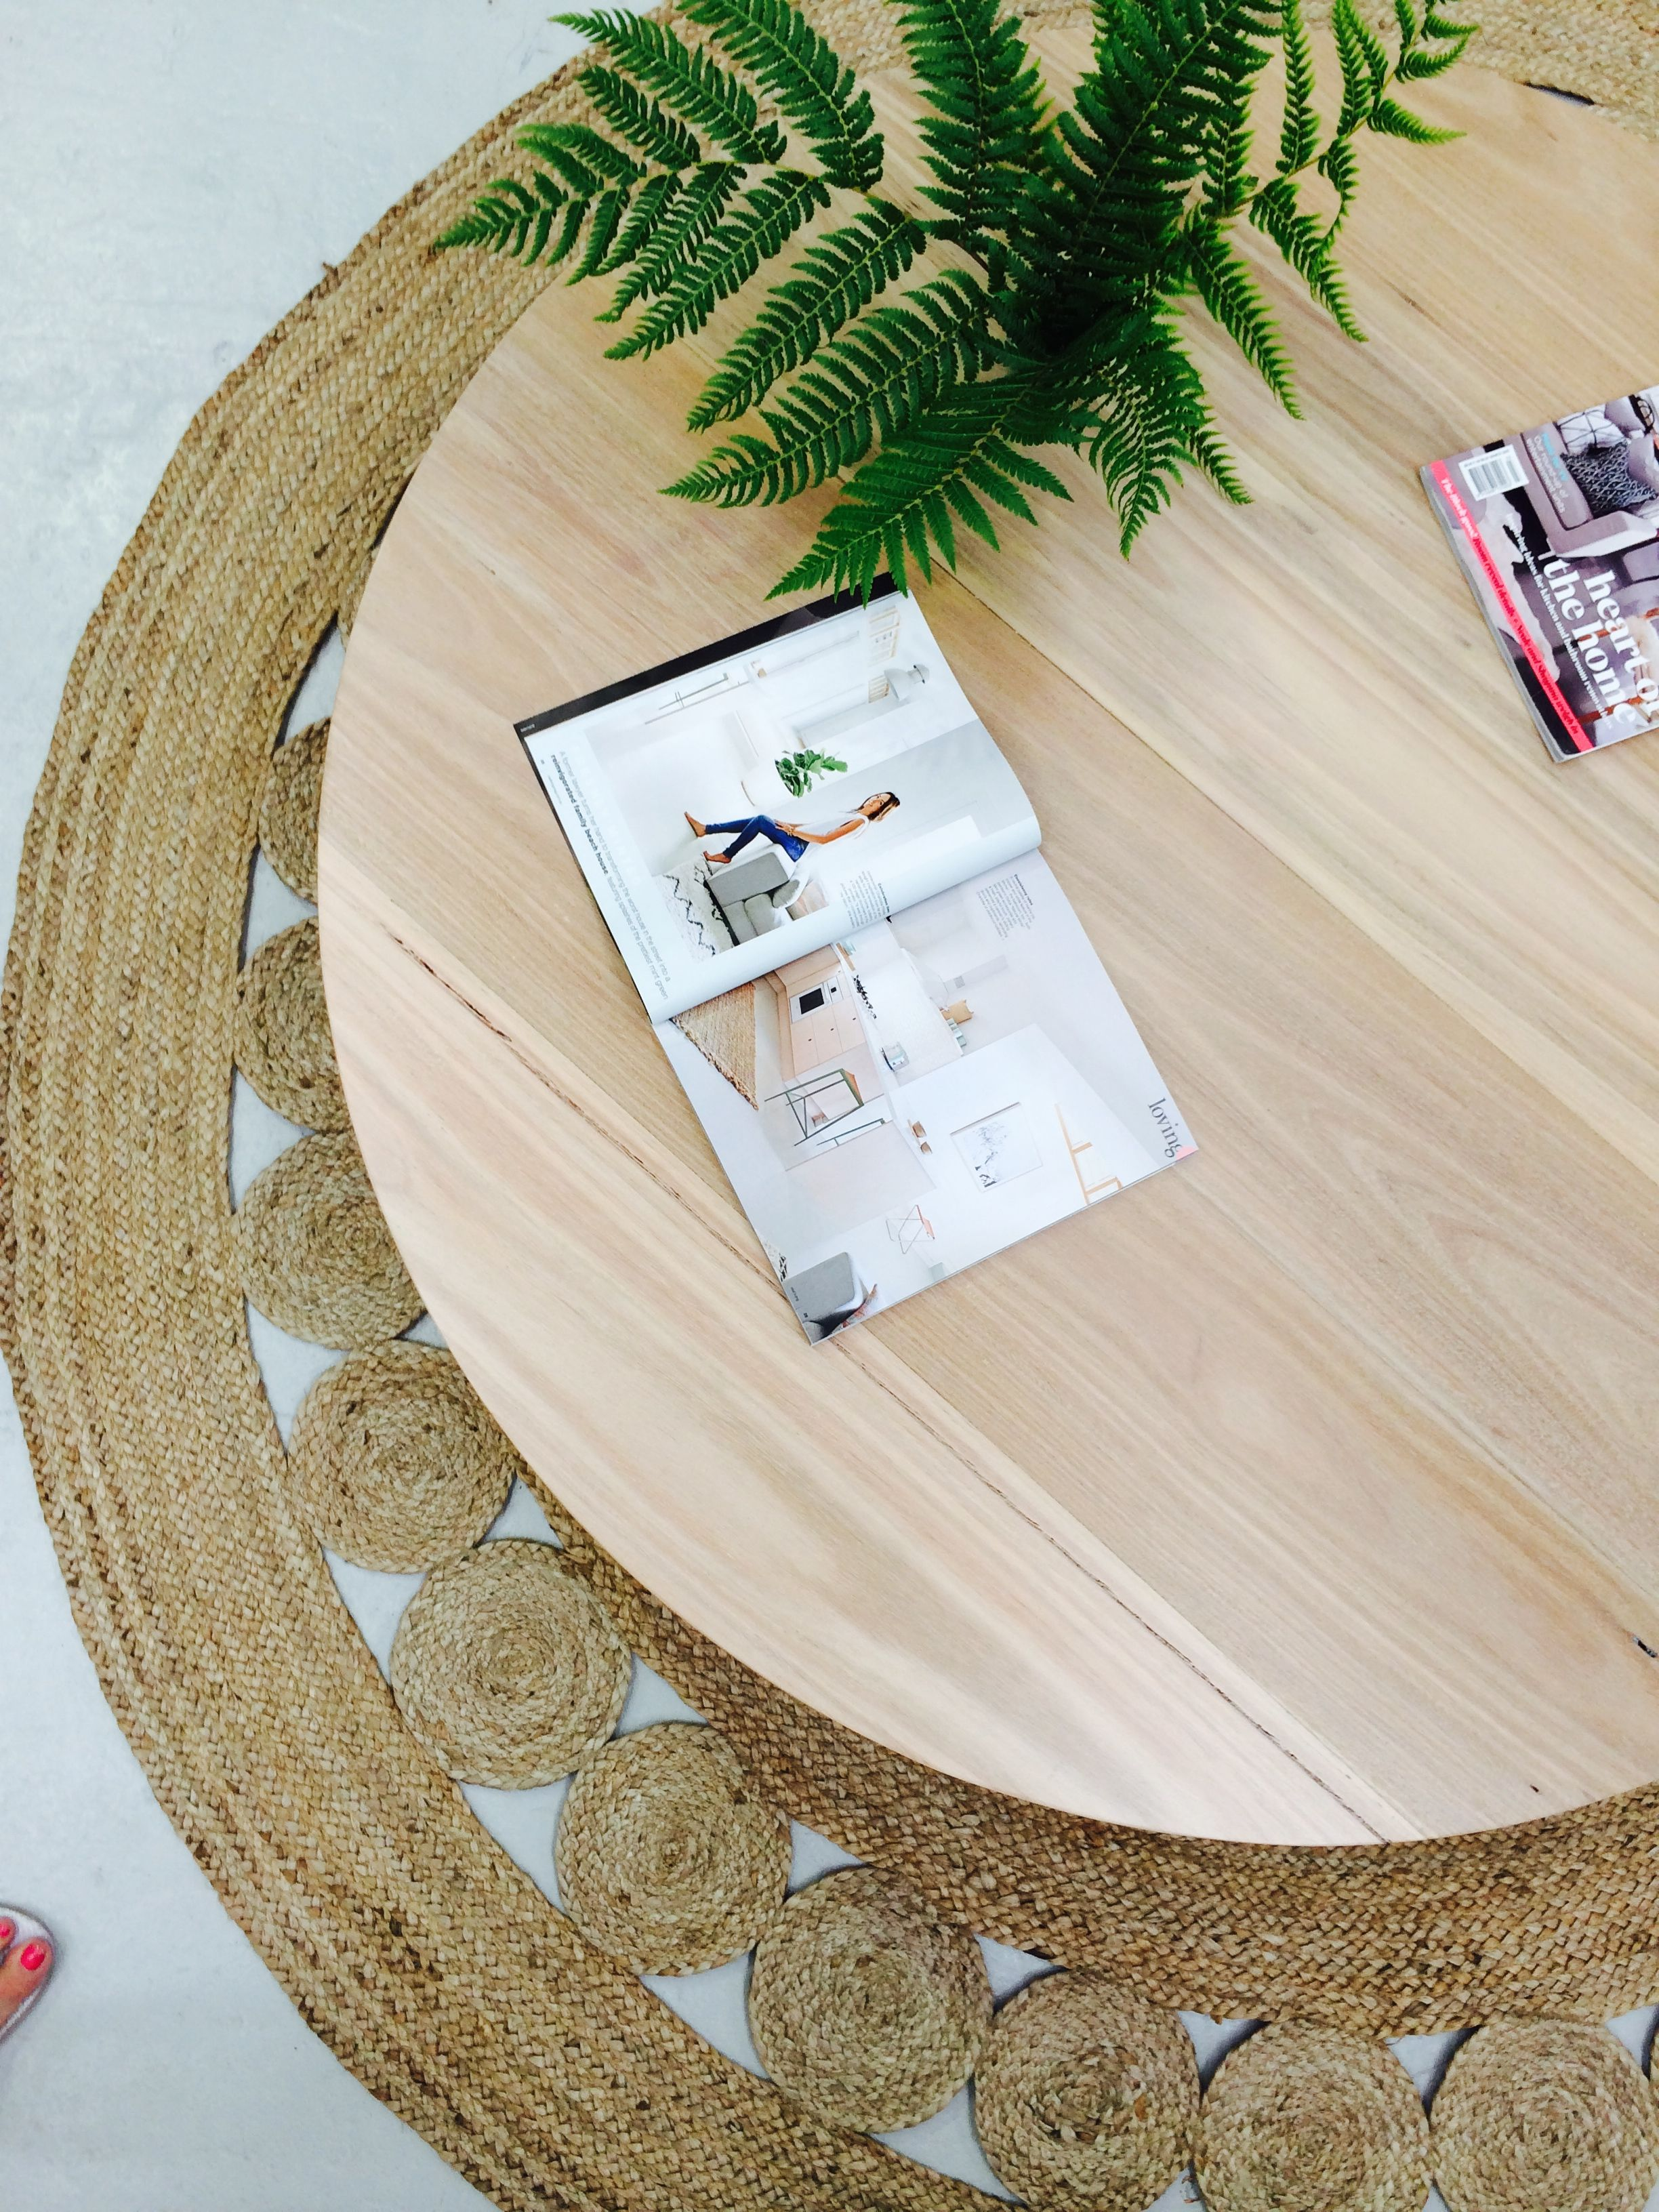 The Orbit Coffee Table   Low Line Solid Blackbutt In A 5% Lime Wash Finish